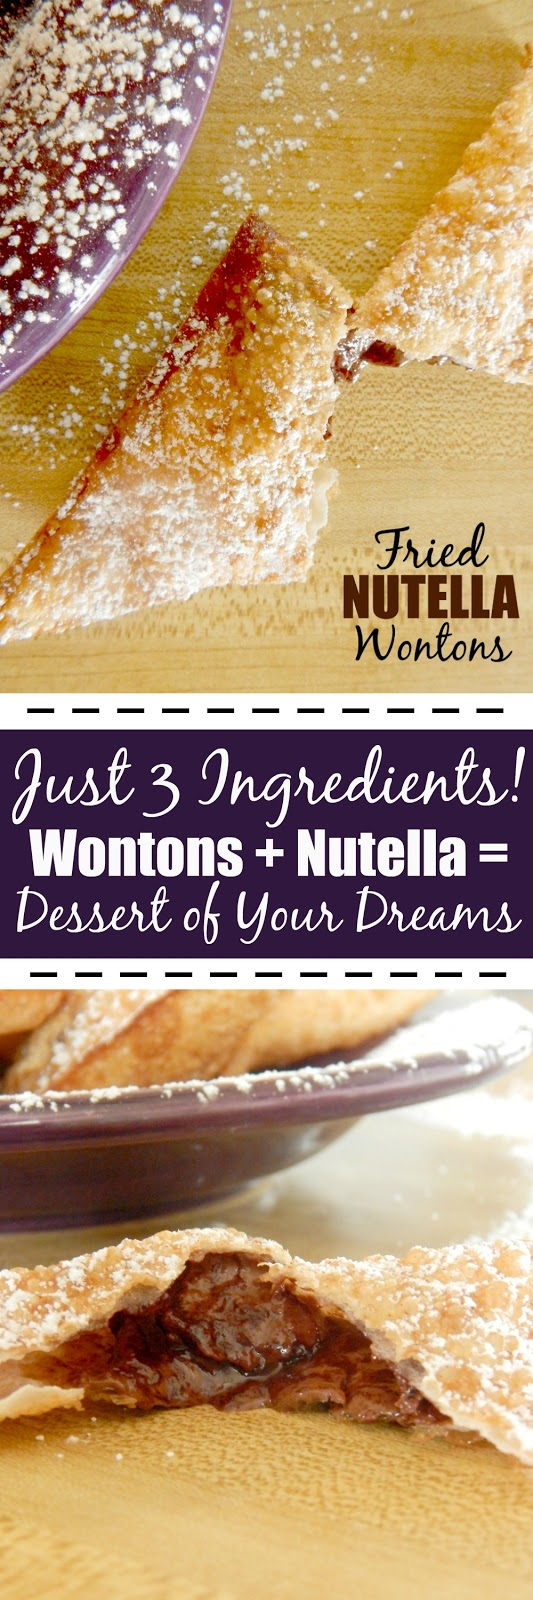 Fried Nutella Wontons....just 3 ingredients and you have a delicious, hot, crispy, oozing with chocolate dessert! (sweetandsavoryfood.com)